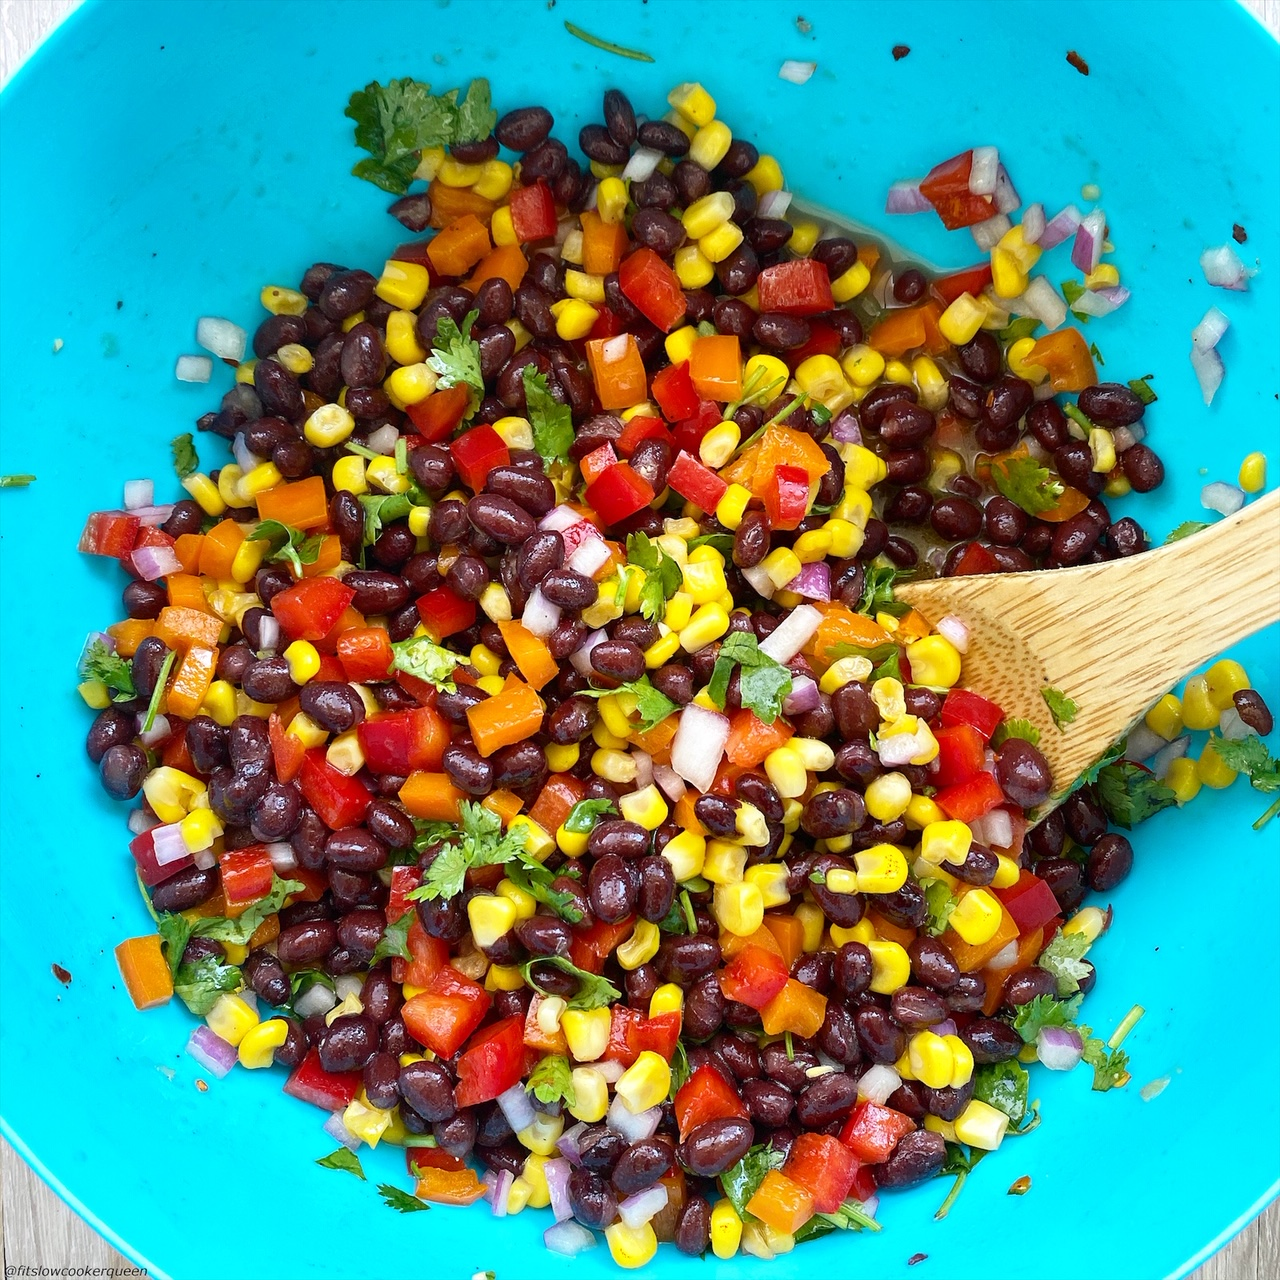 Mixed together in a large bowl: black beans, corn, diced orange bell pepper, diced red bell pepper, red onion, fresh cilantro